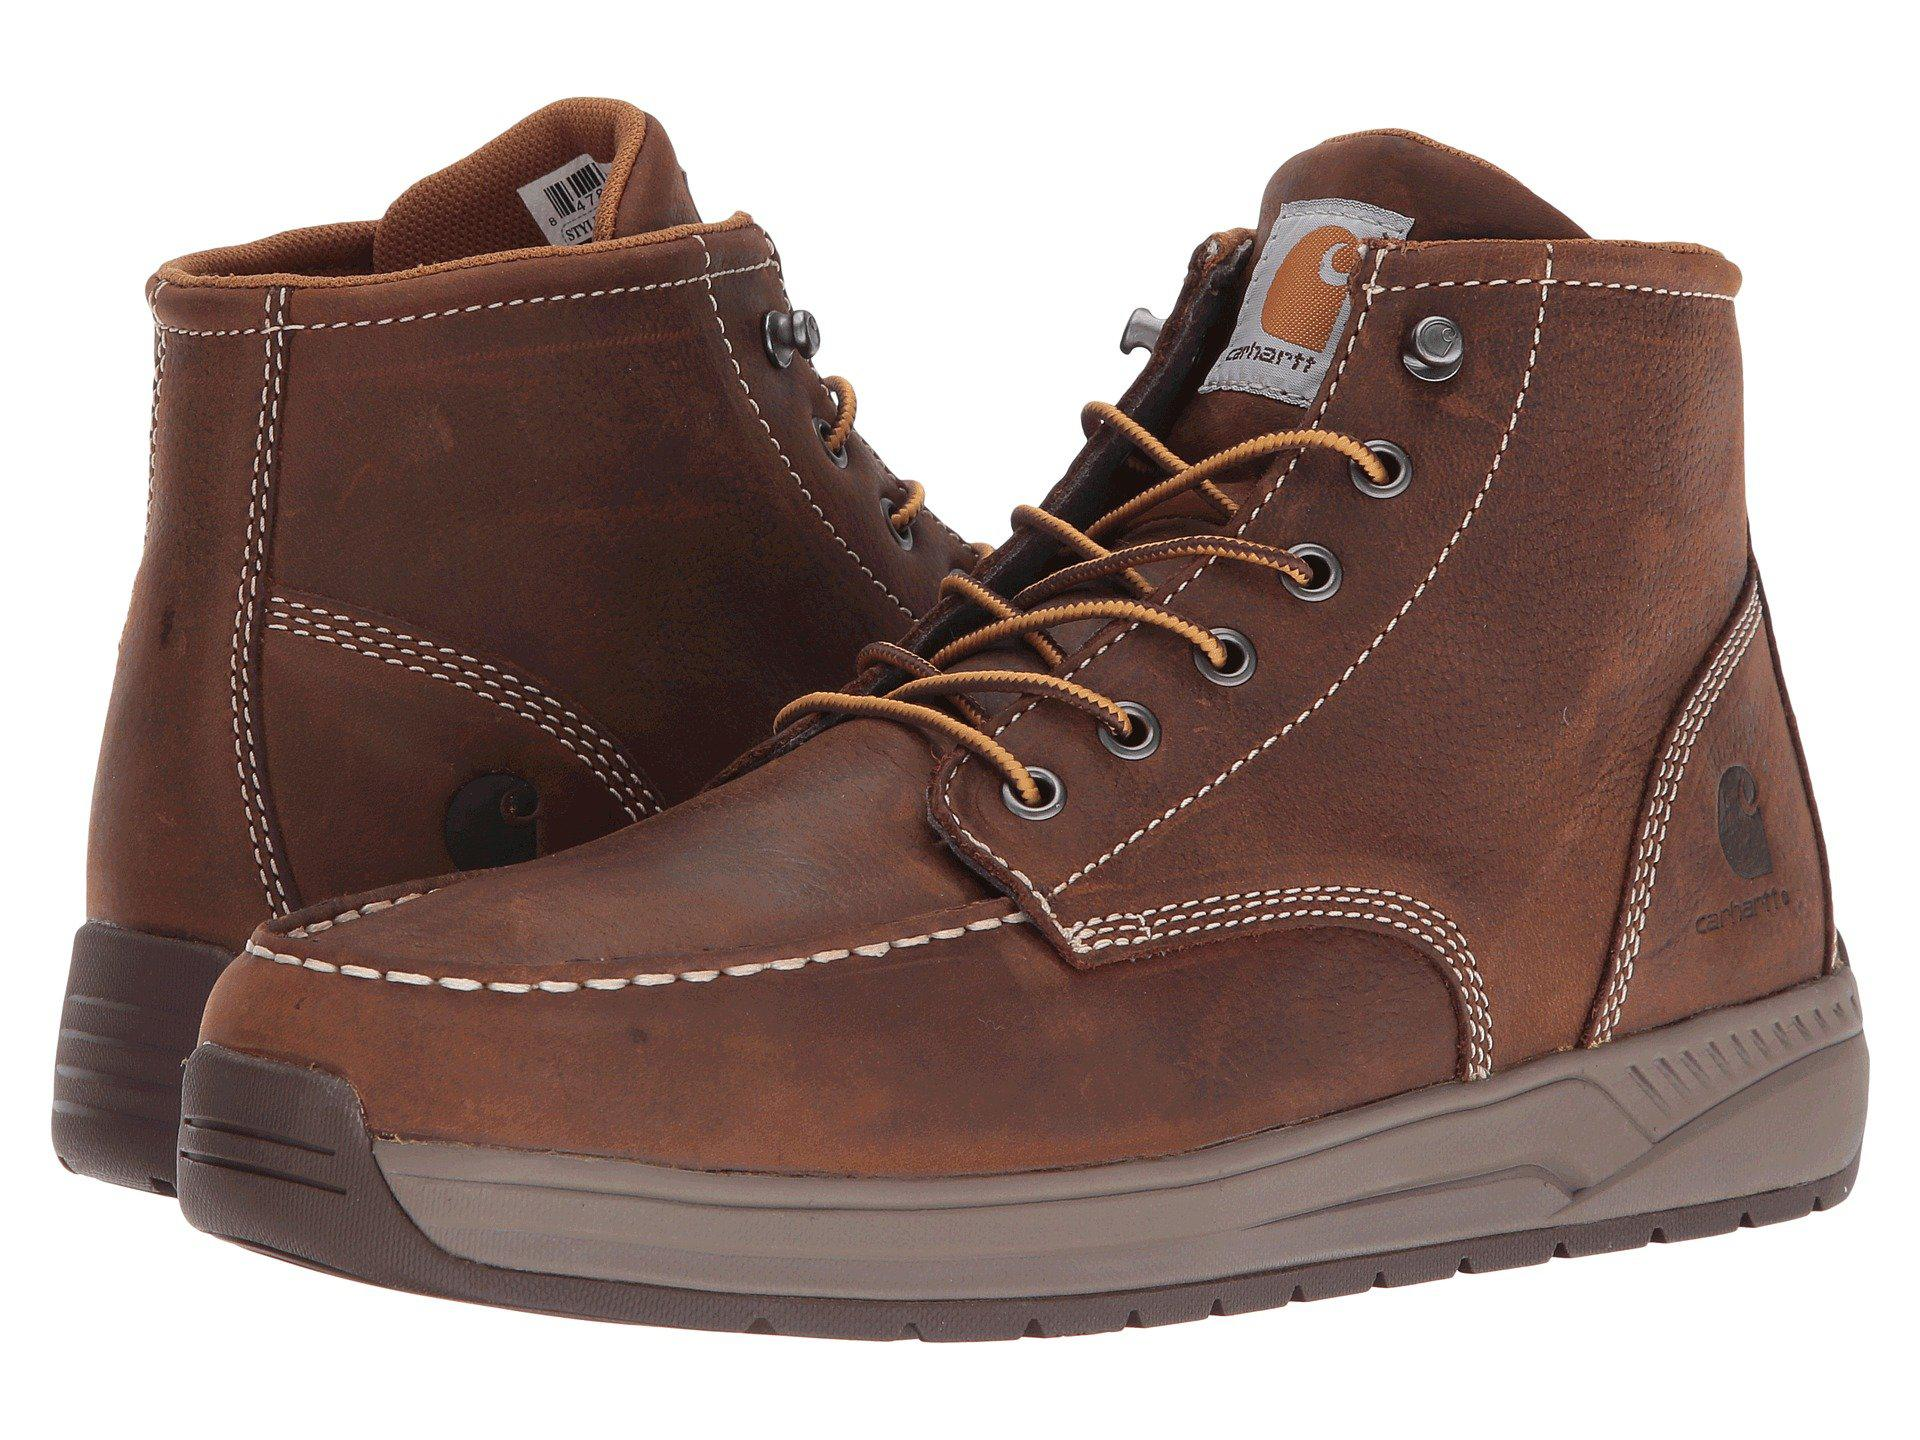 c95e69c6fe4 Lyst - Carhartt 4 Lightweight Wedge Boot (brown Oil Tanned Leather ...